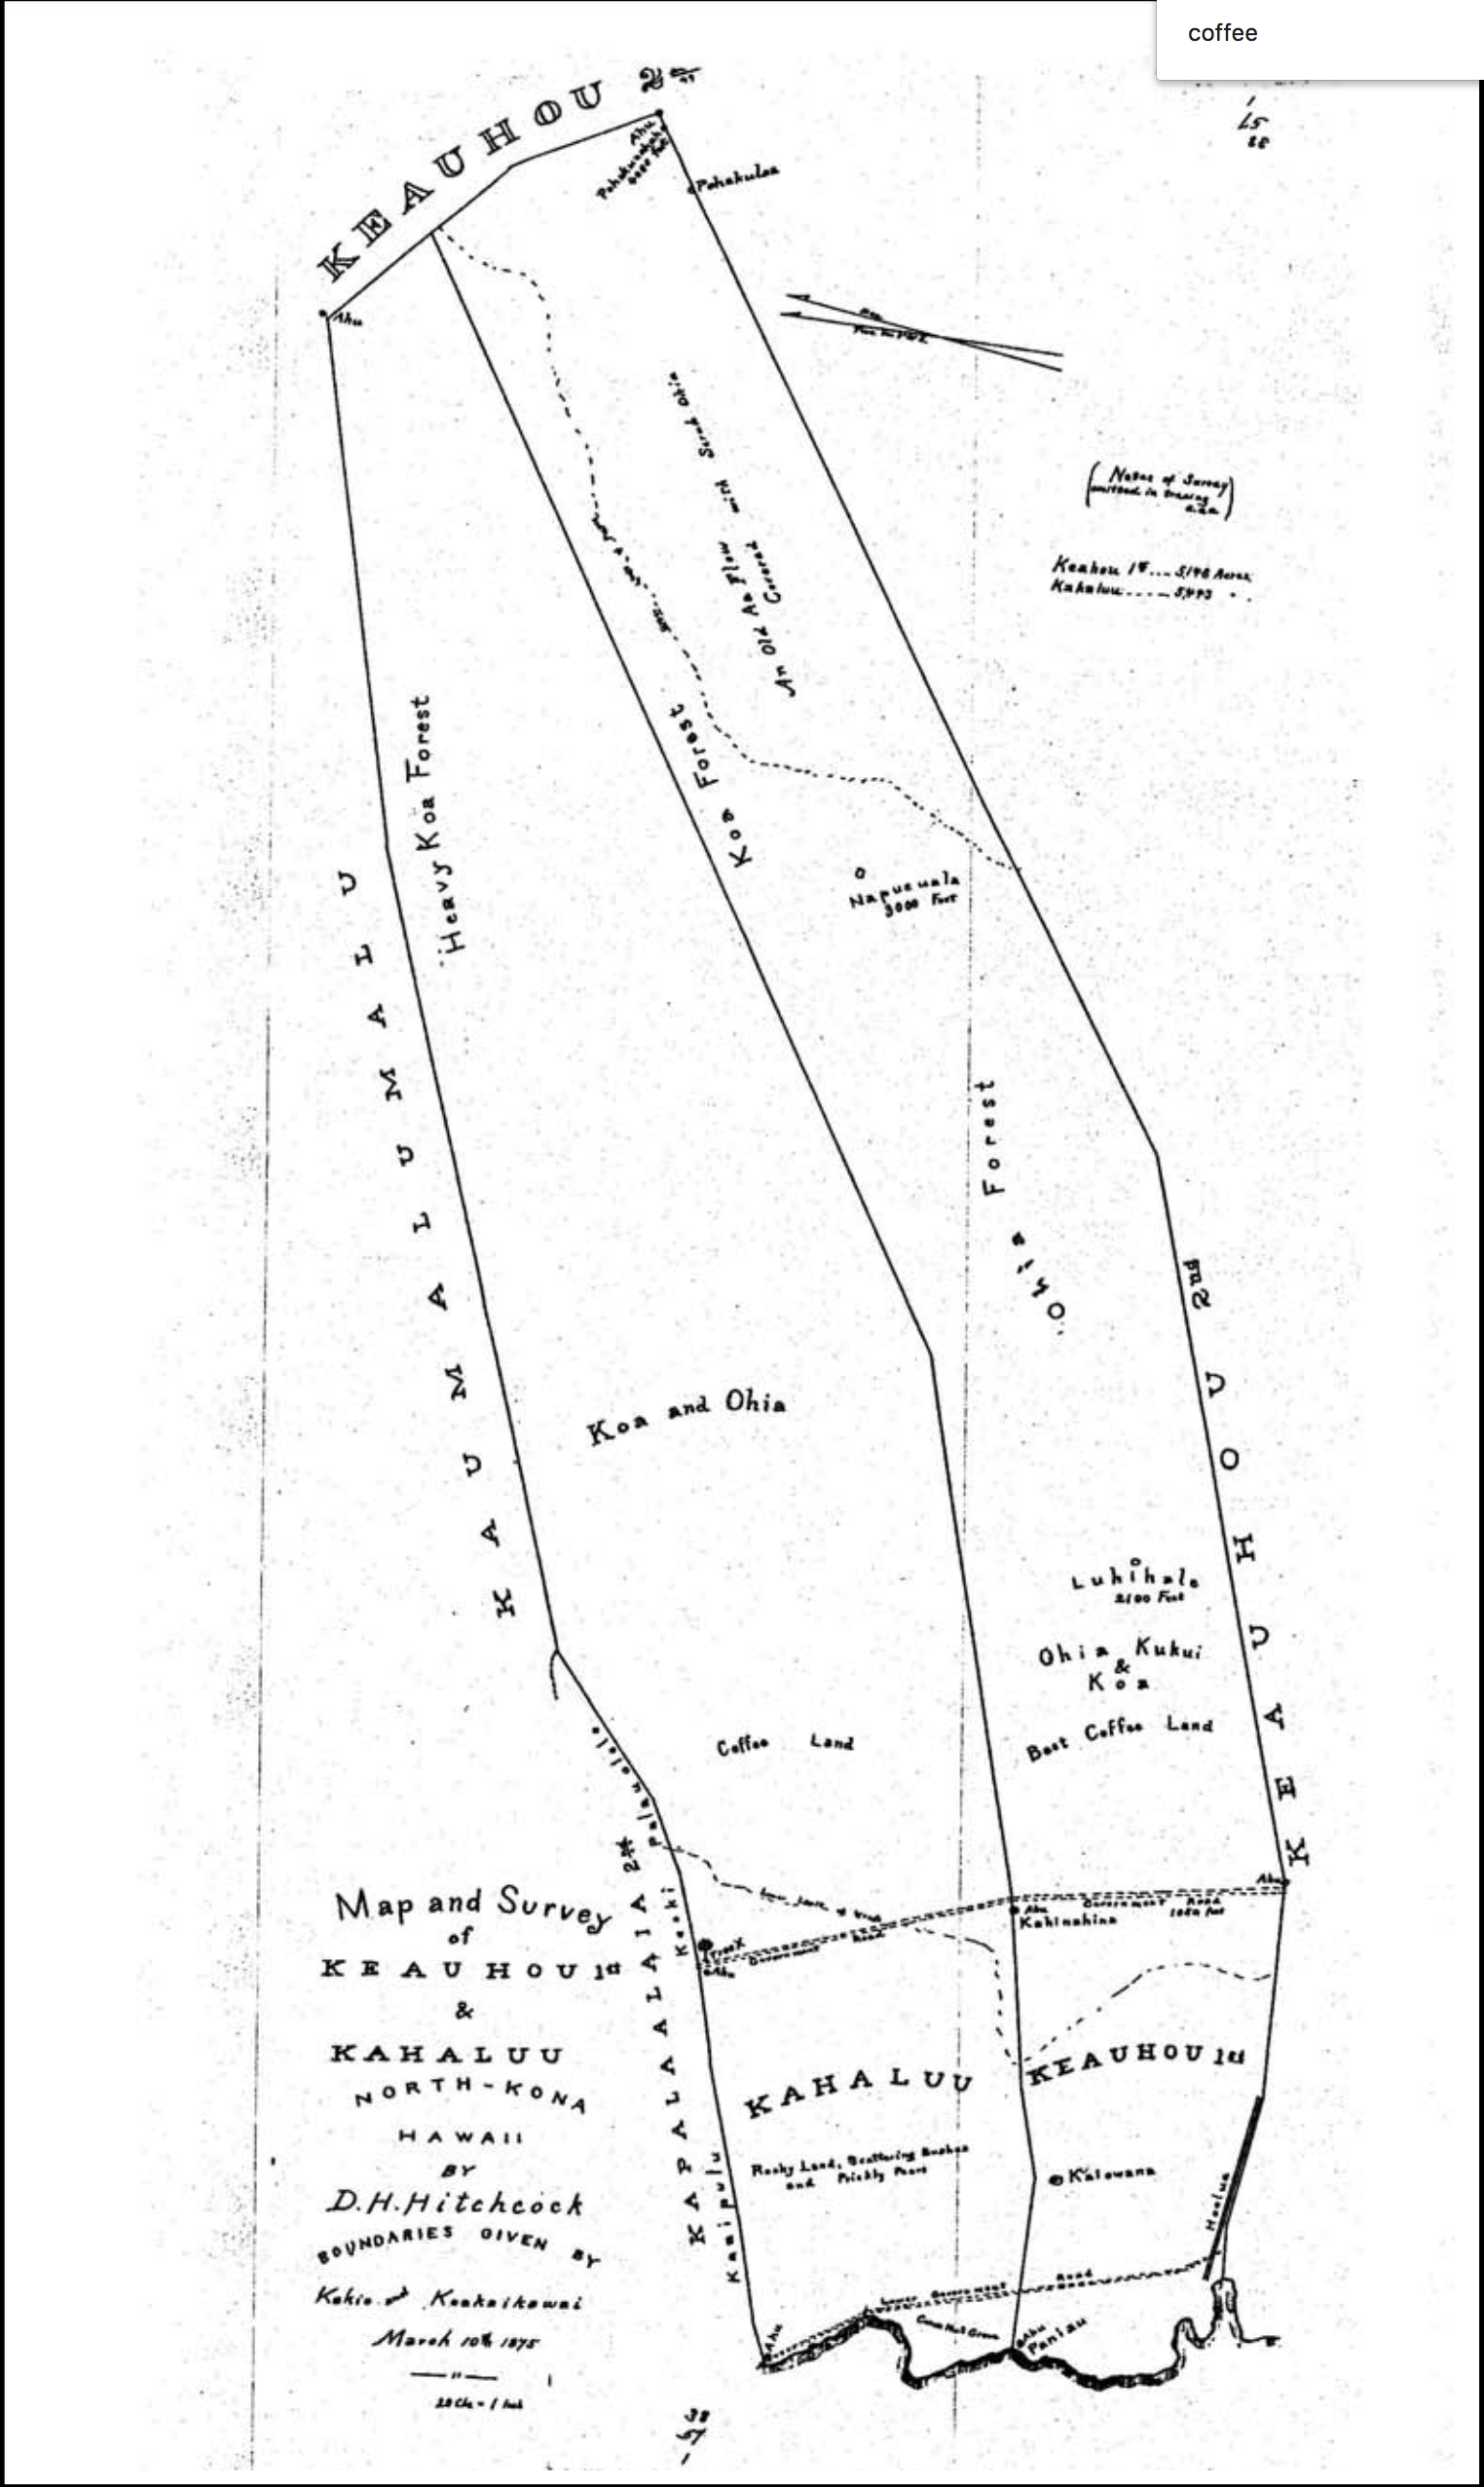 Map and Survey of Keauhou 1st & Kahaluu. North Kona, Hawaii. D.H. Hitchcock (1875) Boundaries according to Witness Testimonies before the Boundary Commission Bishop Estate Map No 38